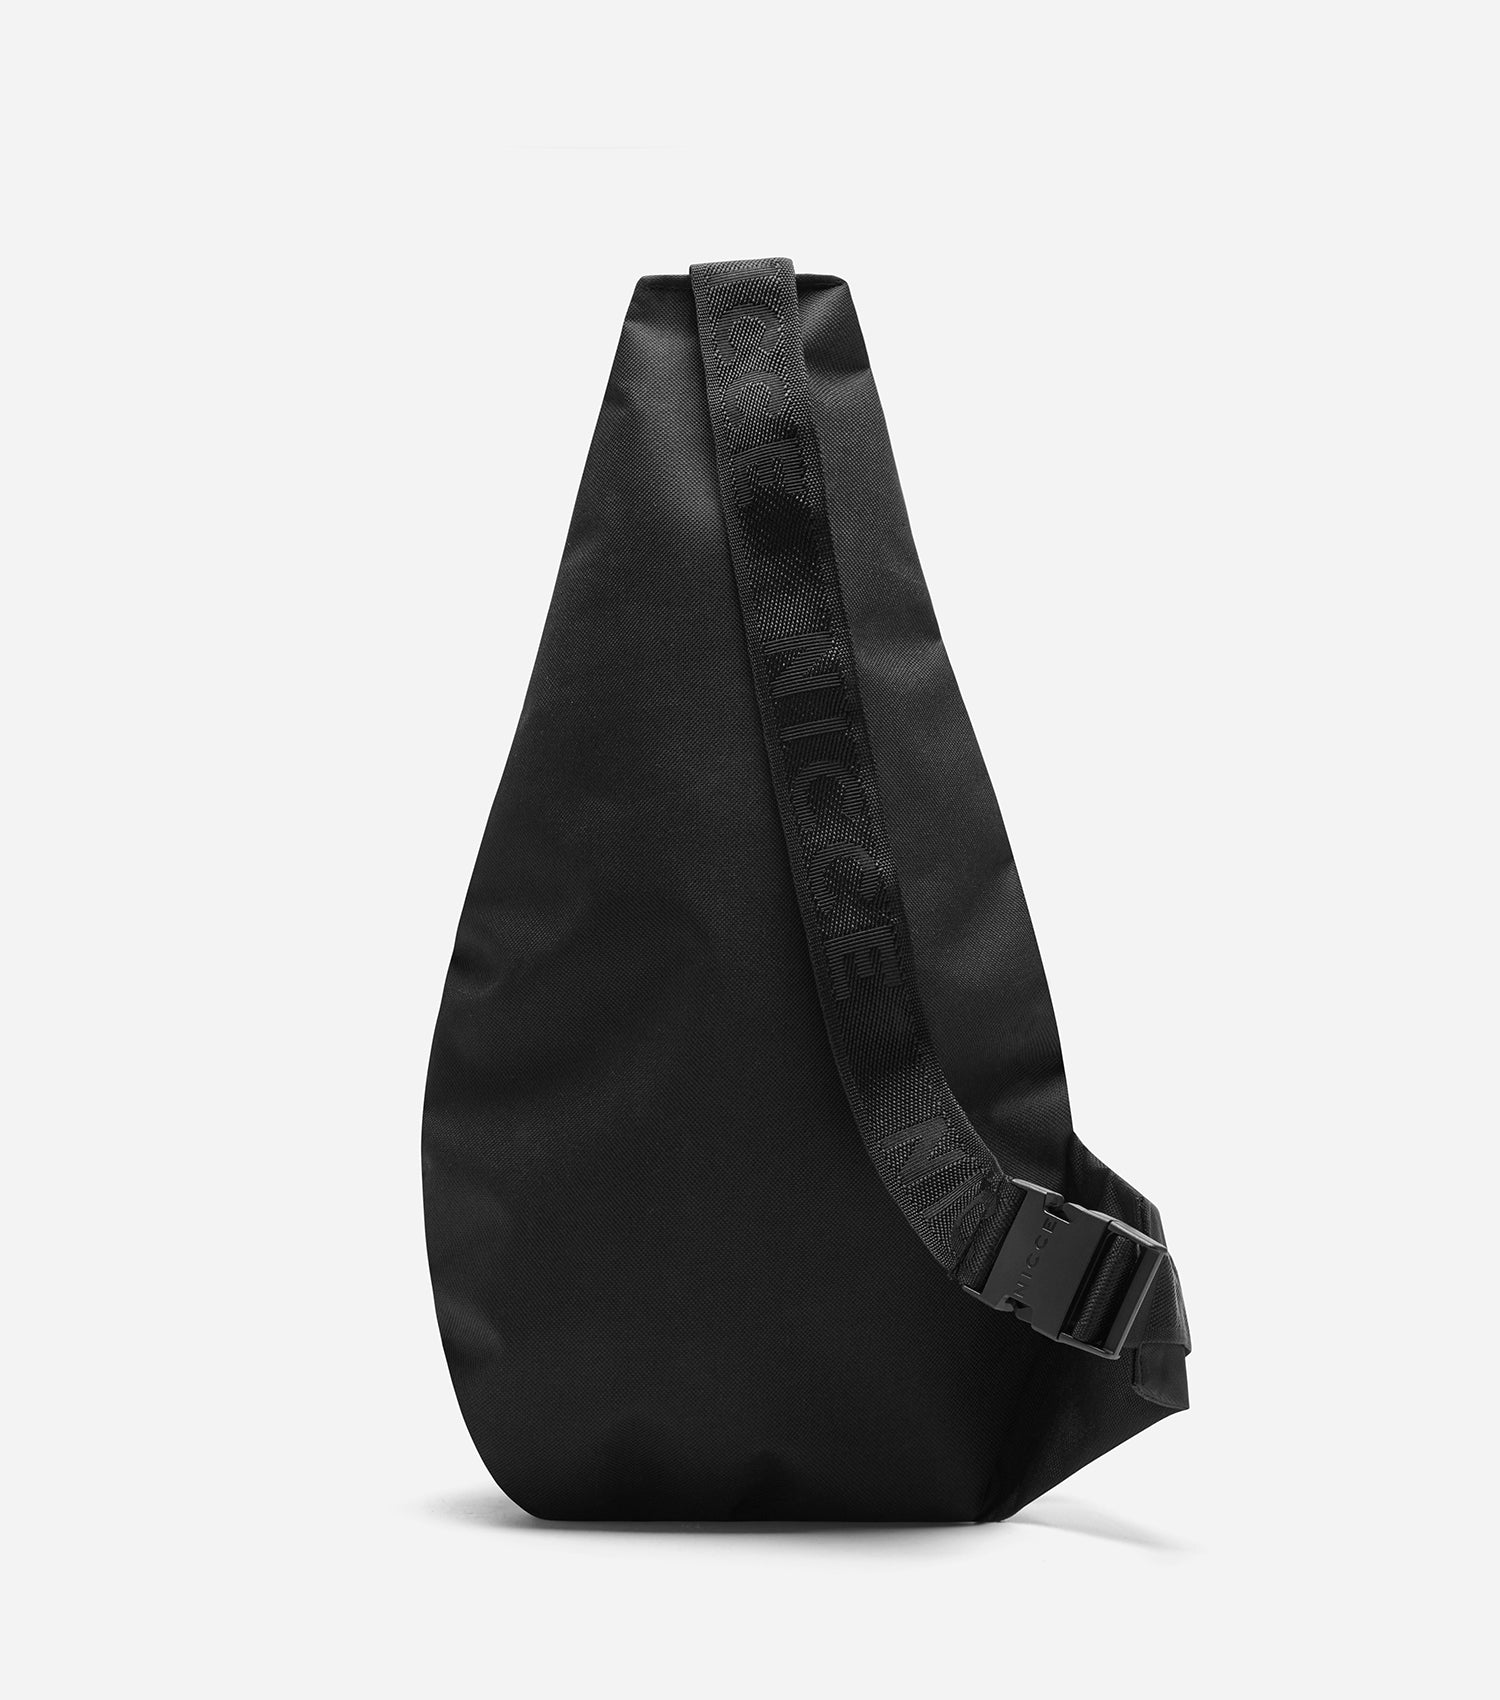 NICCE Dart Crossbody Bag | Black, Bags